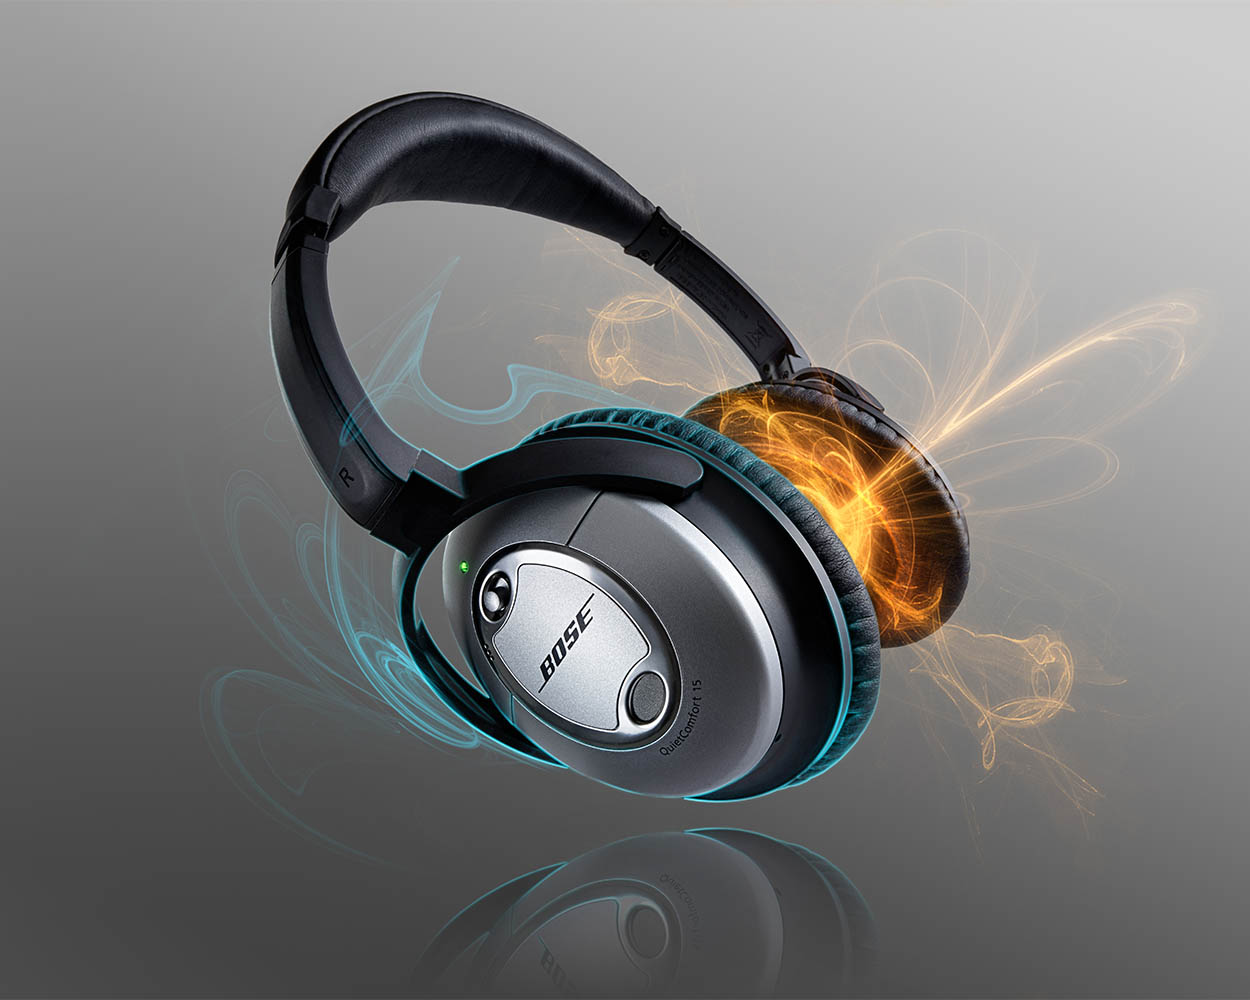 paul_christey_photography_brisbane_product_bose_headphones_low-res